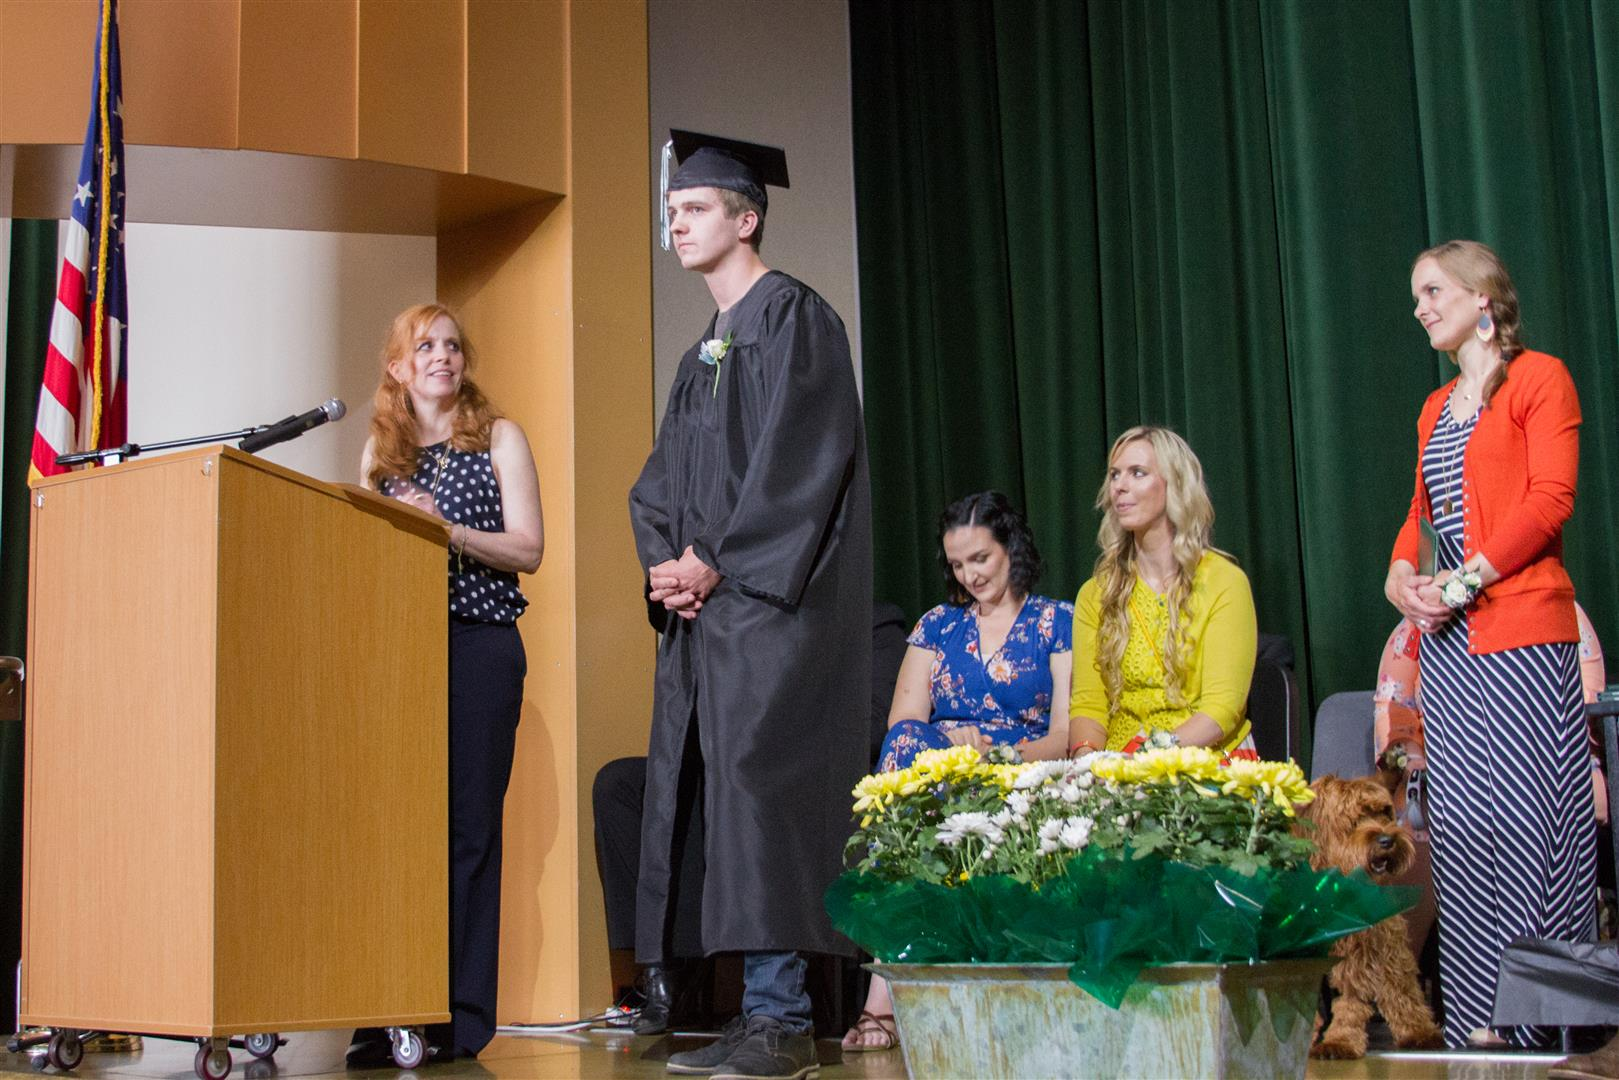 1560449999-team-high-class-of-2019-commencement-18__large_